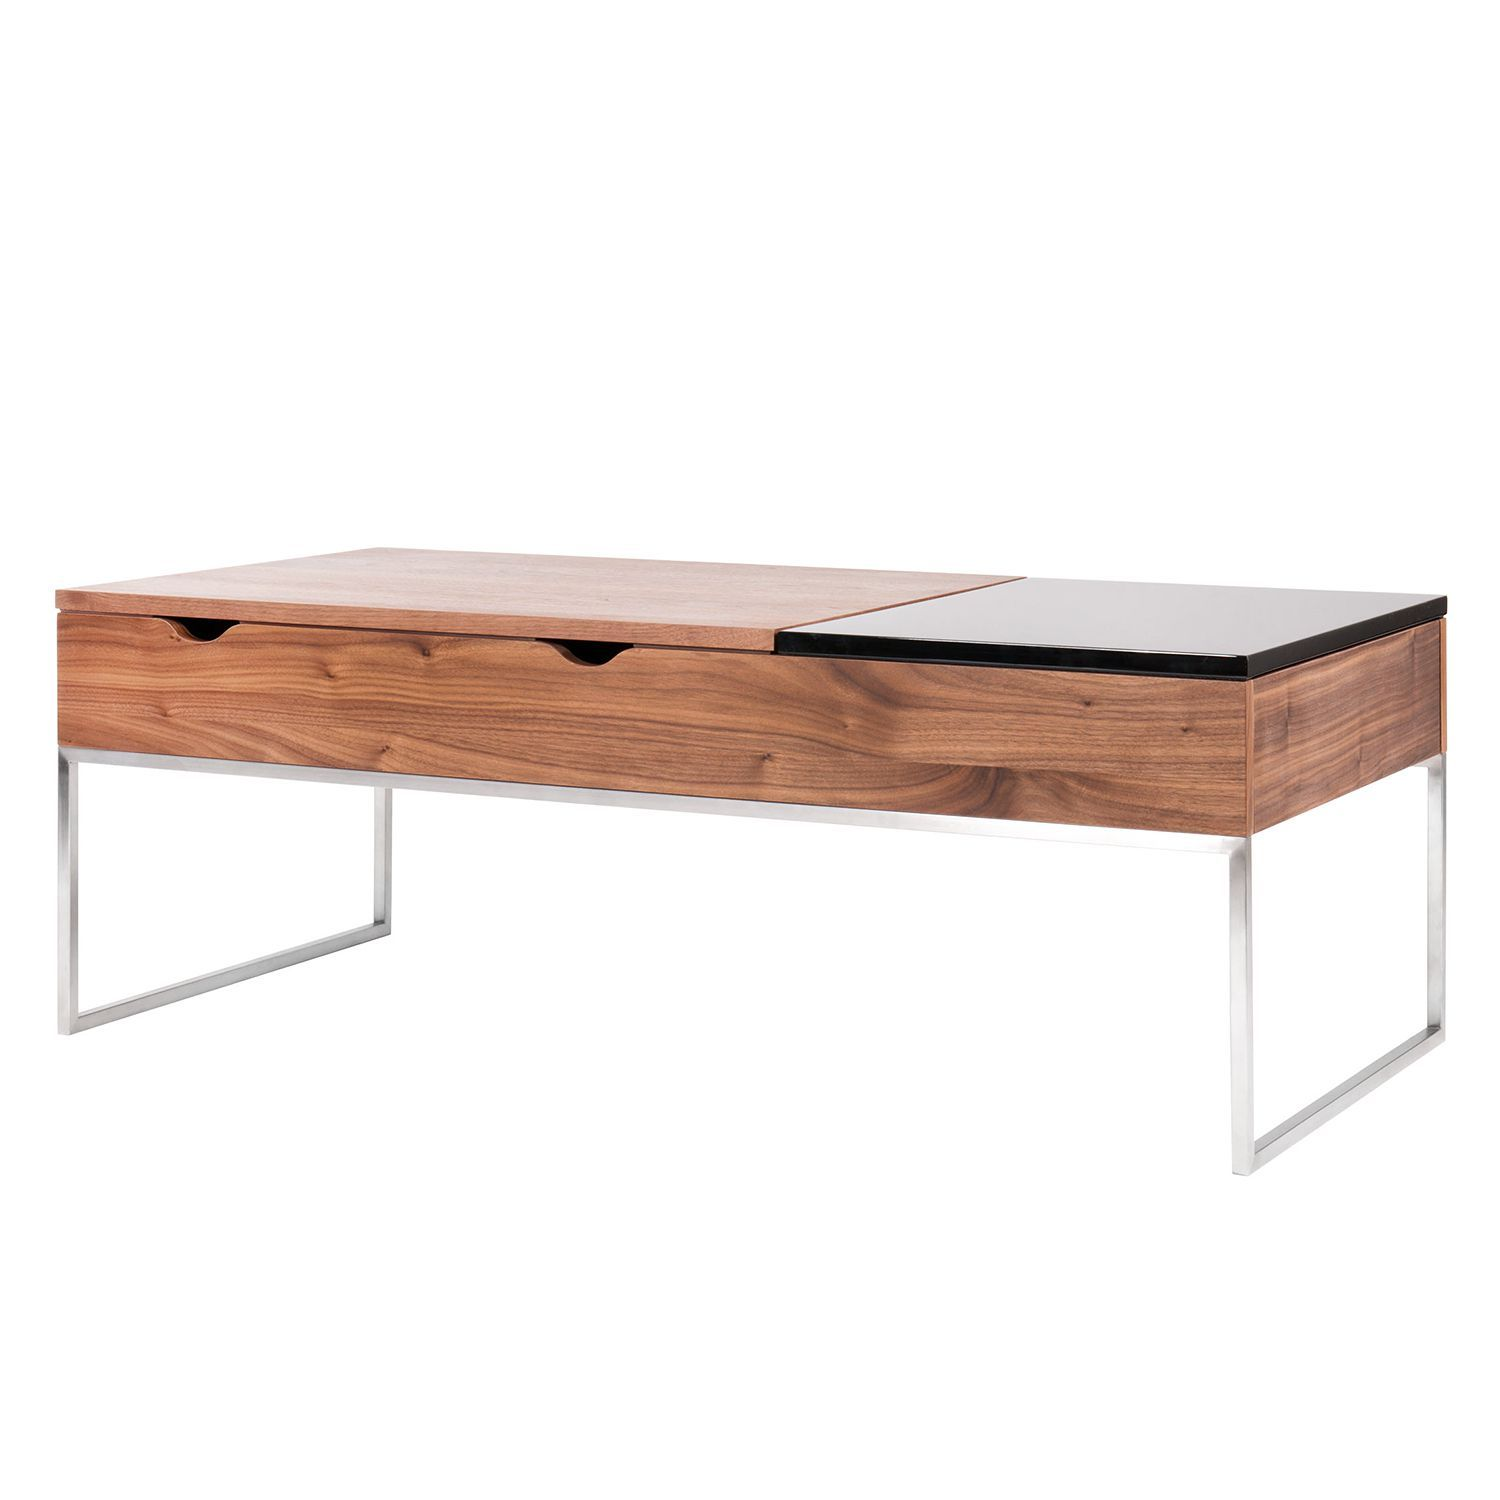 Table basse Max - Noyer / Noir brillant, Fredriks